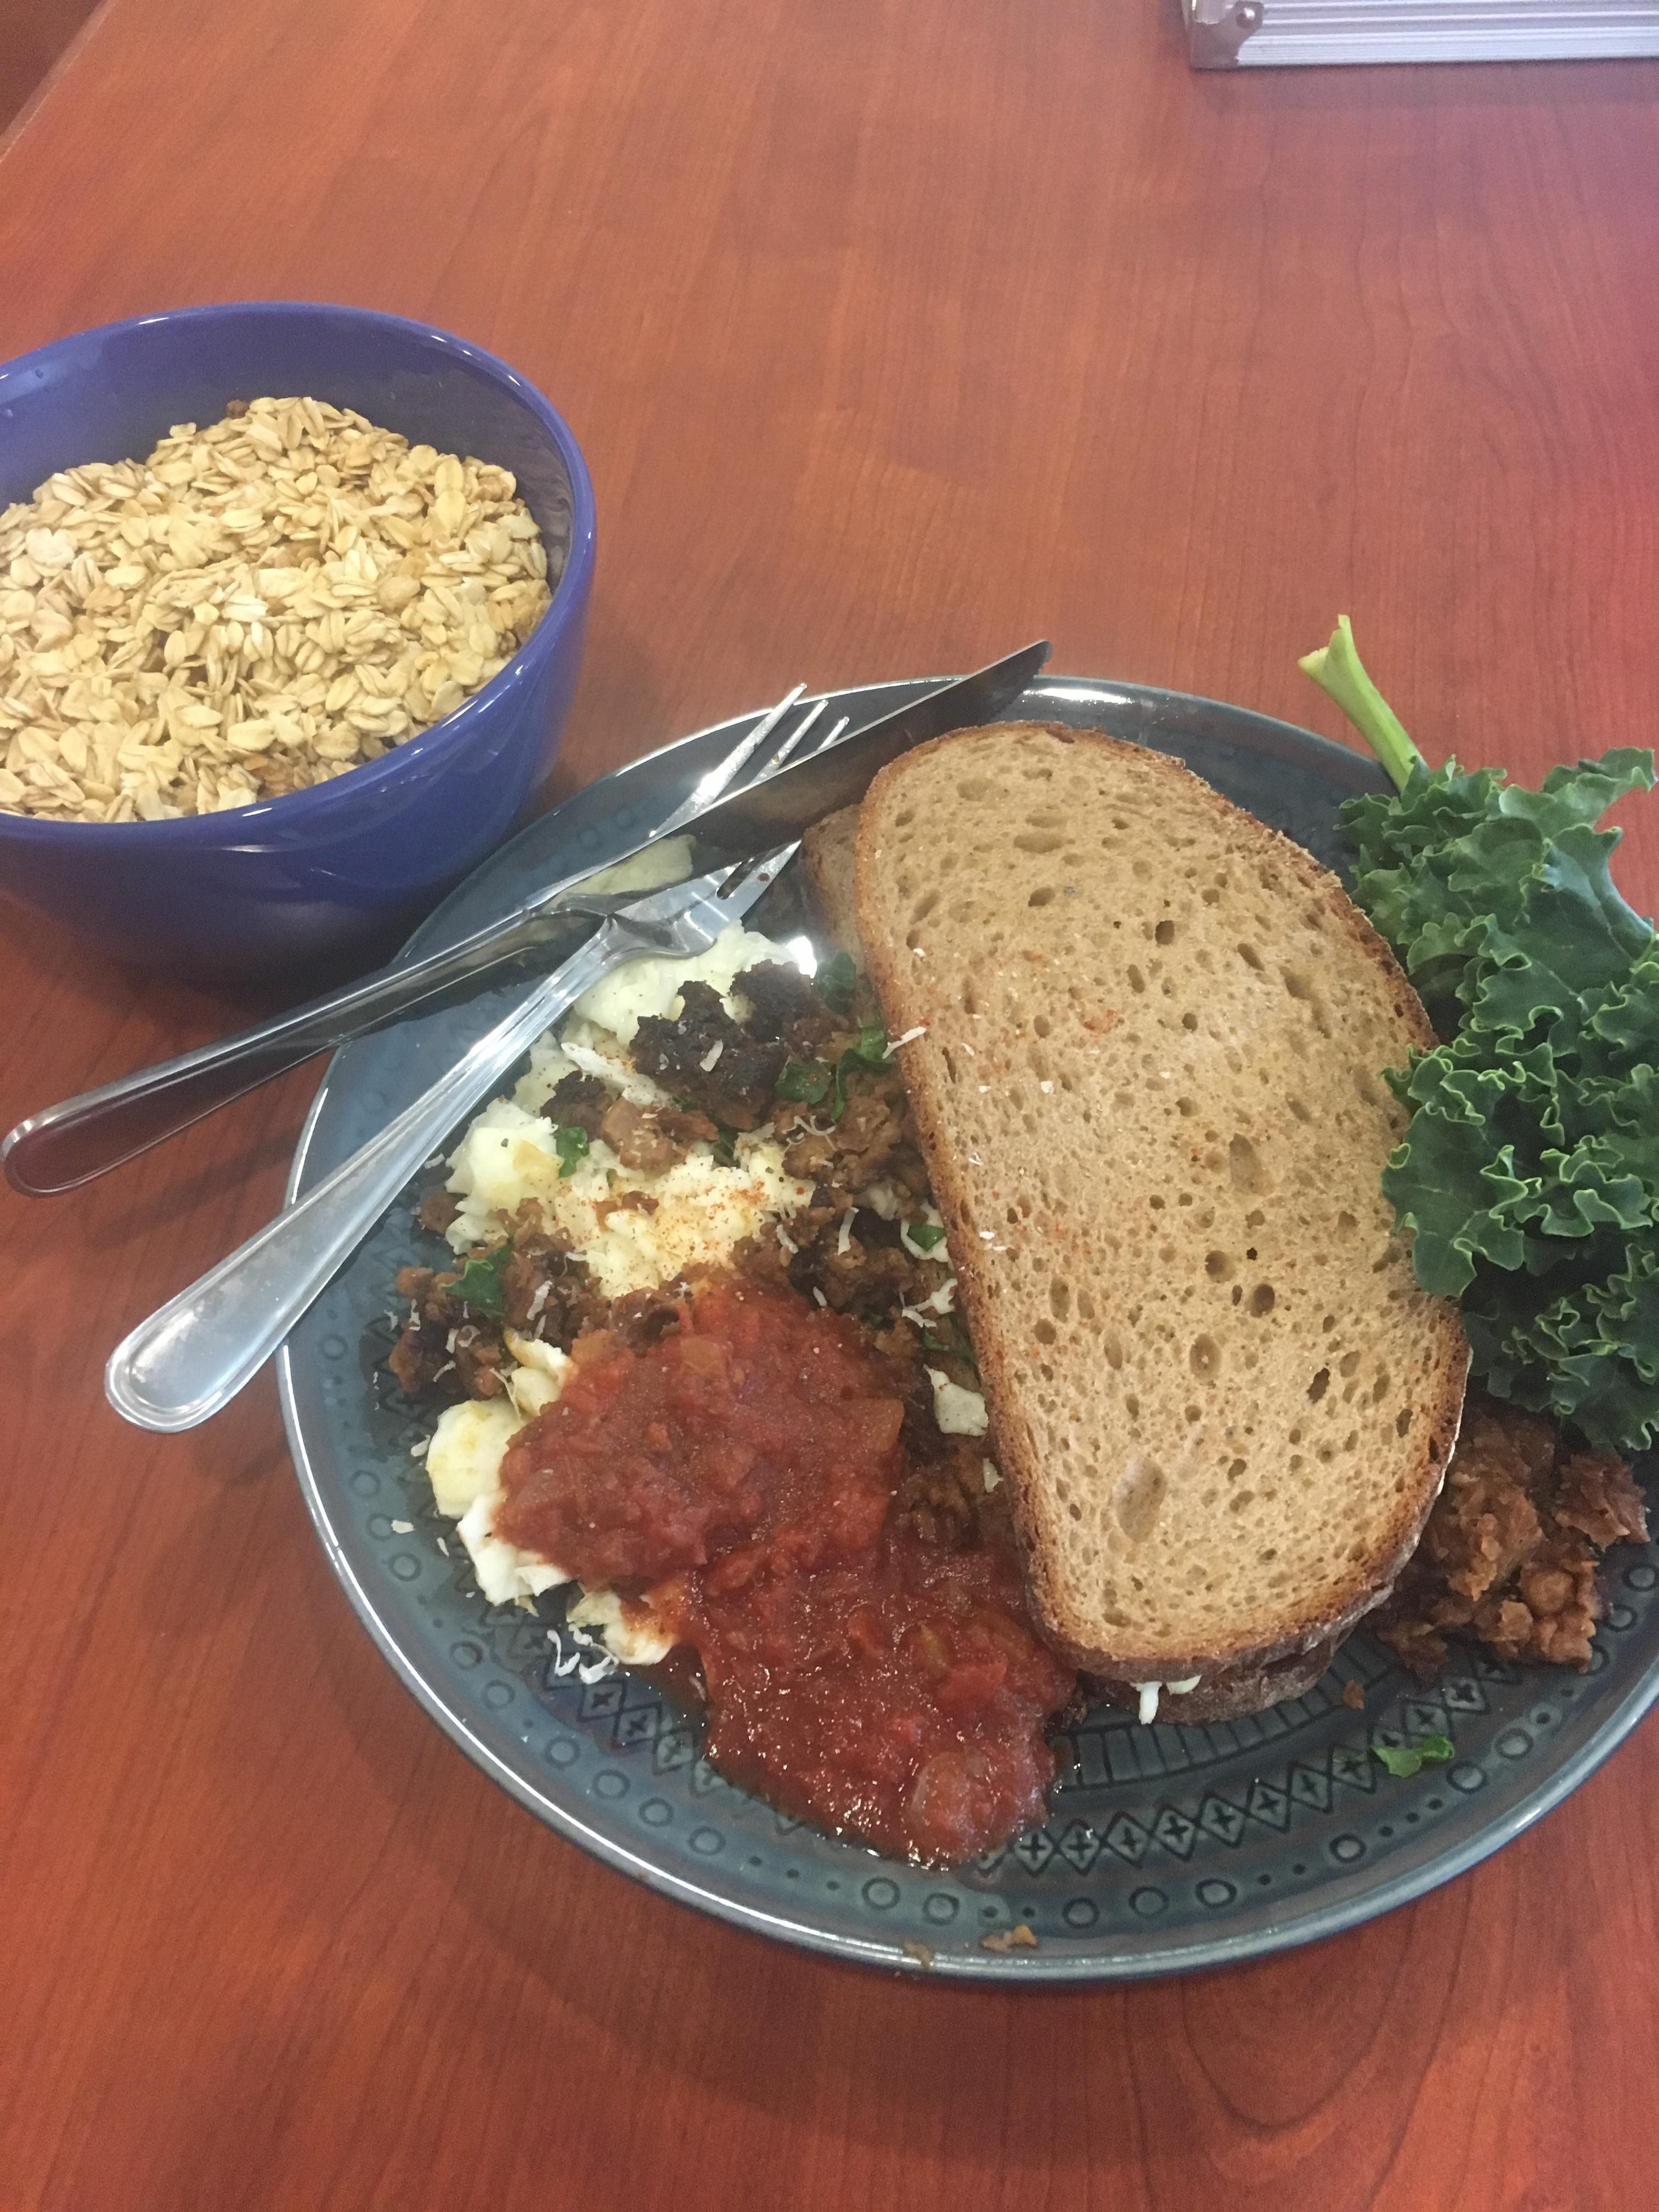 Homemade Egg White And Vegetarian Ground Beef Sandwich On German Farm Bread With Kale Salsa And Oatmeal Food Beef Sandwich Recipes